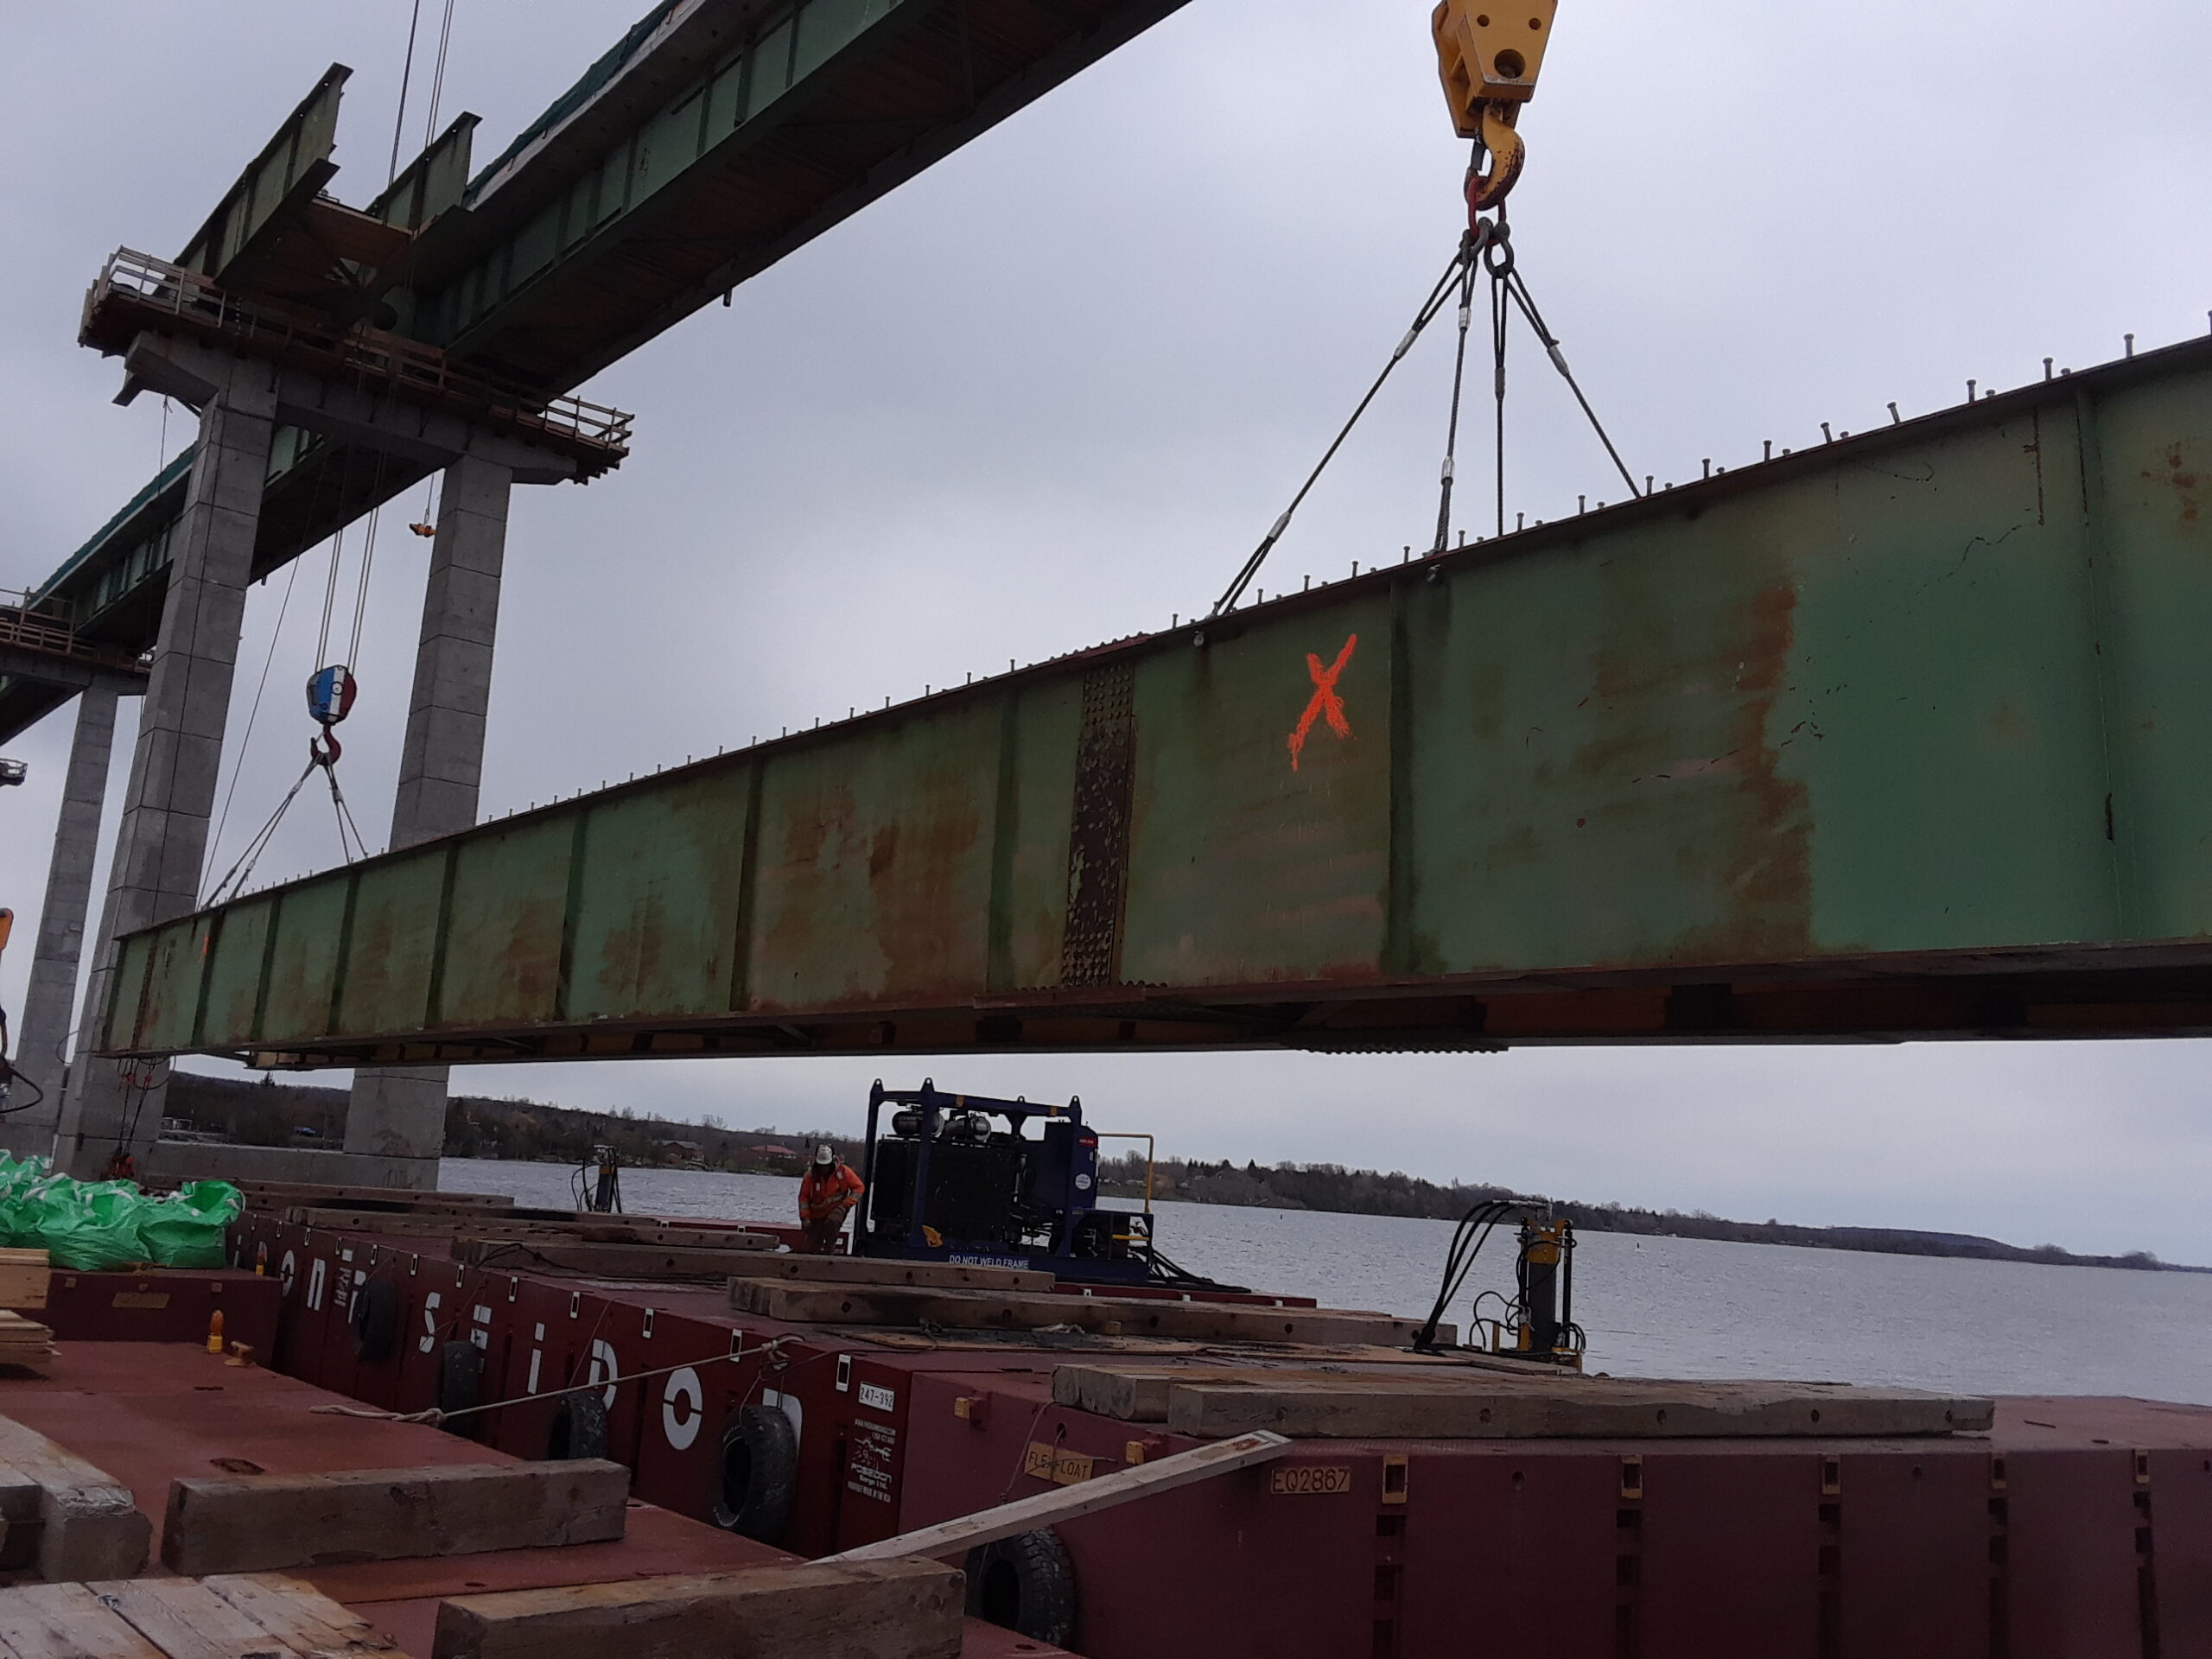 Girder section being lowered onto the barge